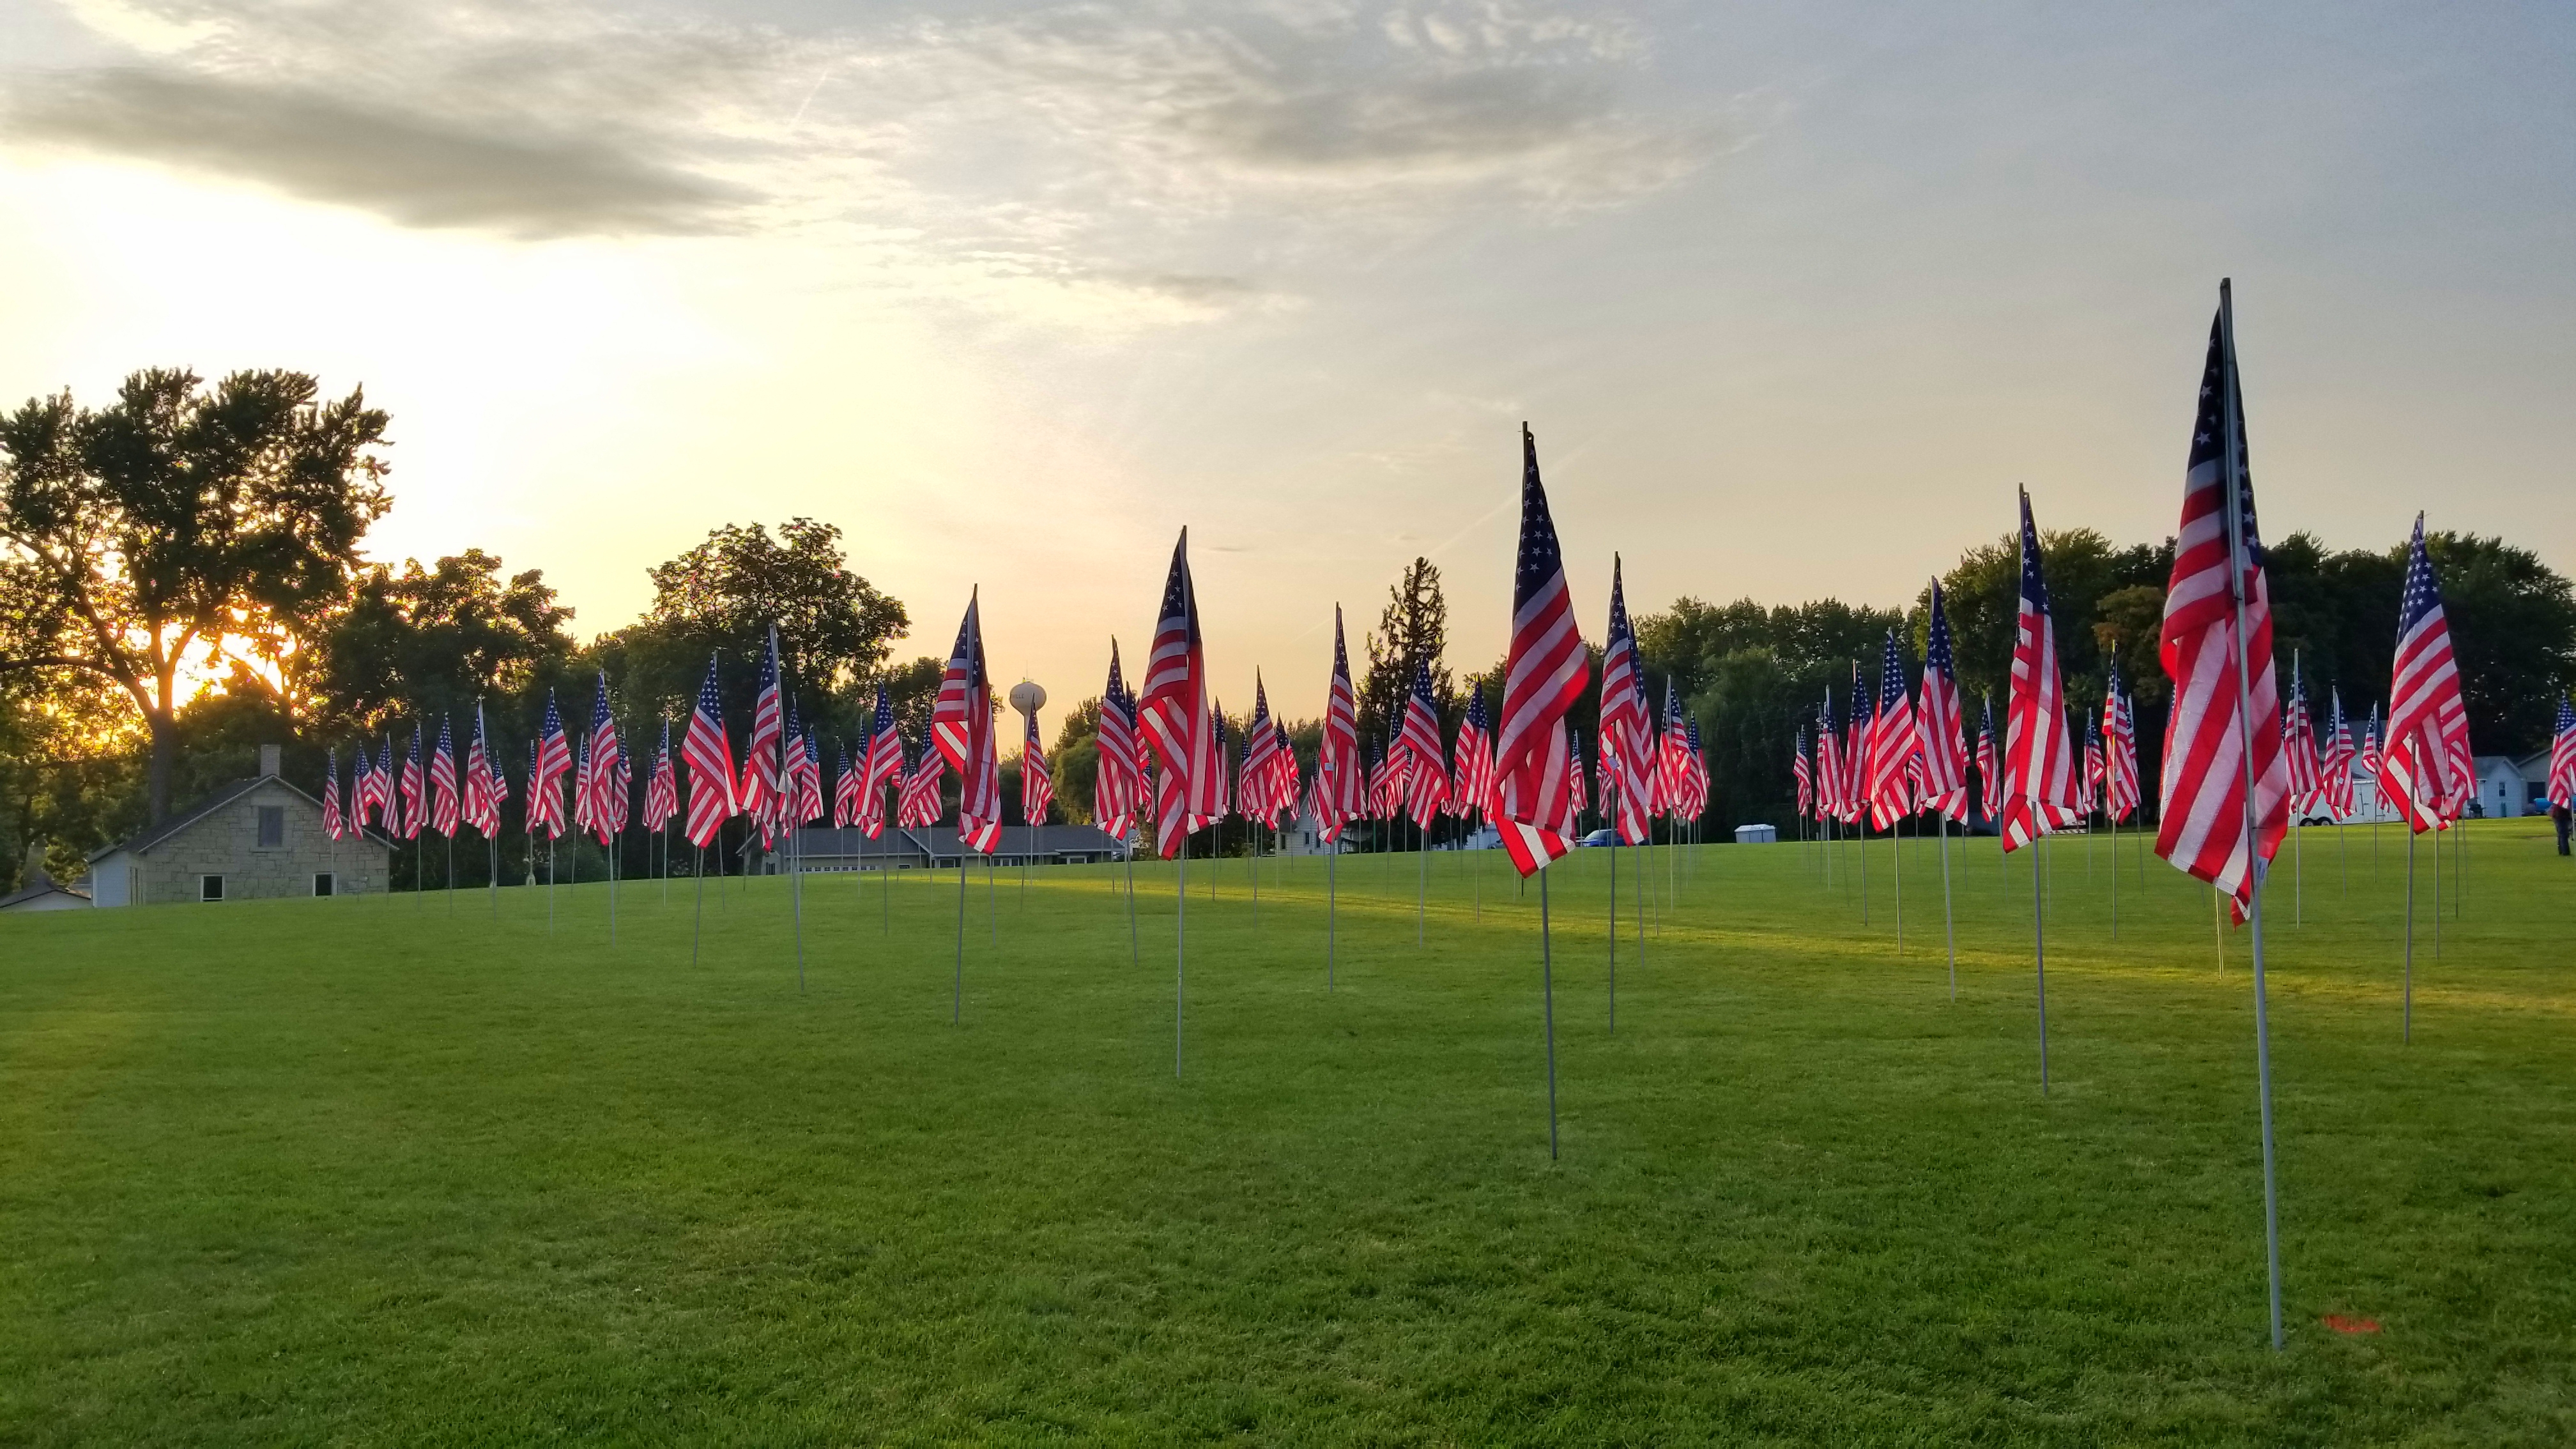 Field of Flags, Mantorville